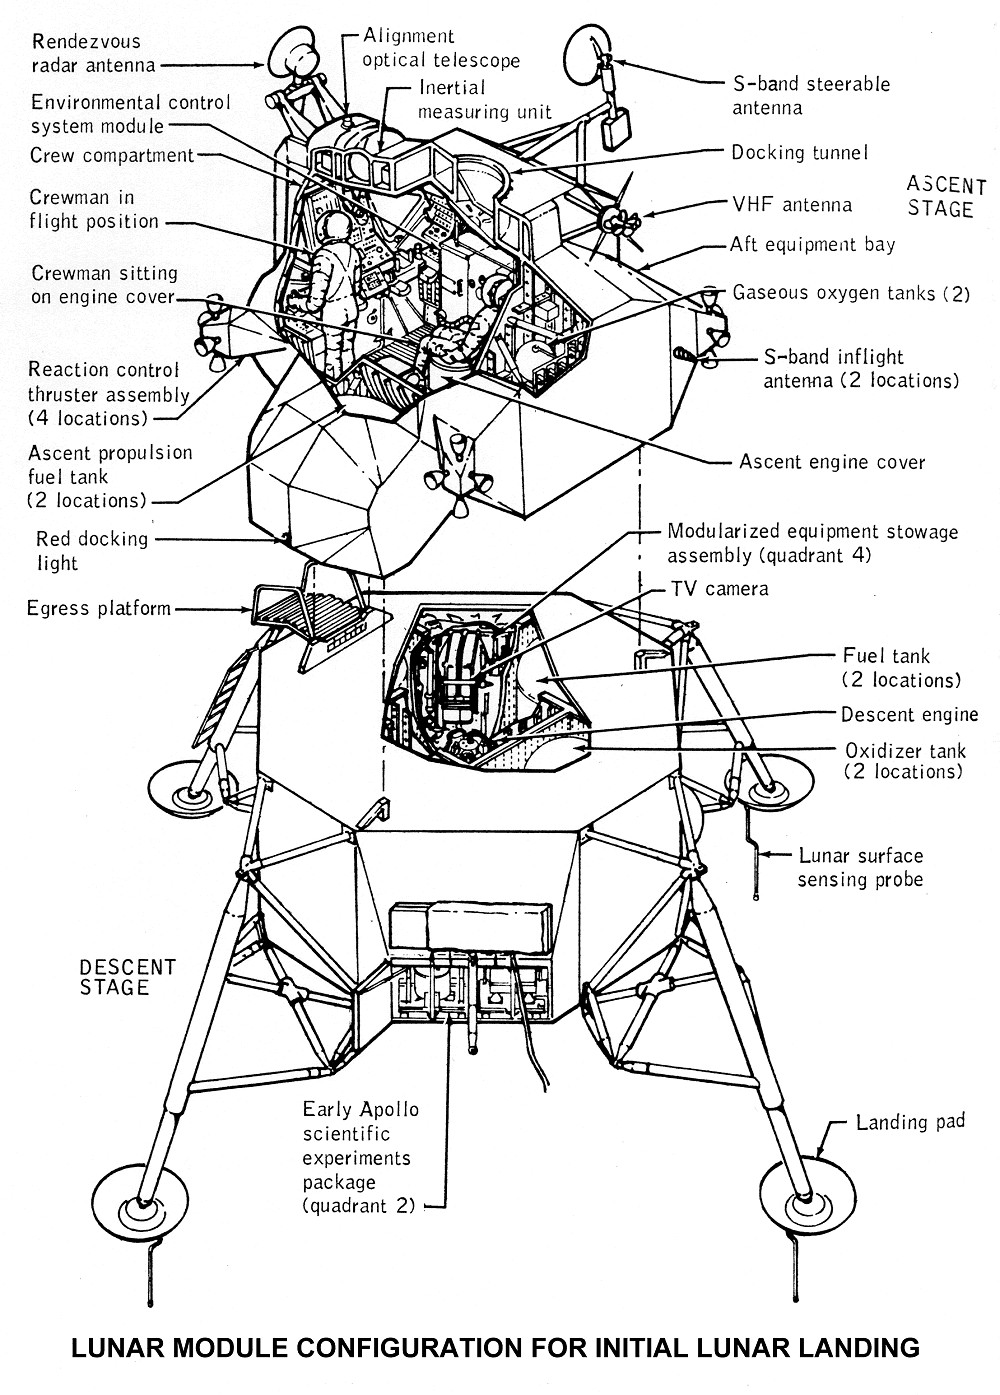 Lunar Module Configuration For Initial Lunar Landing Diagram